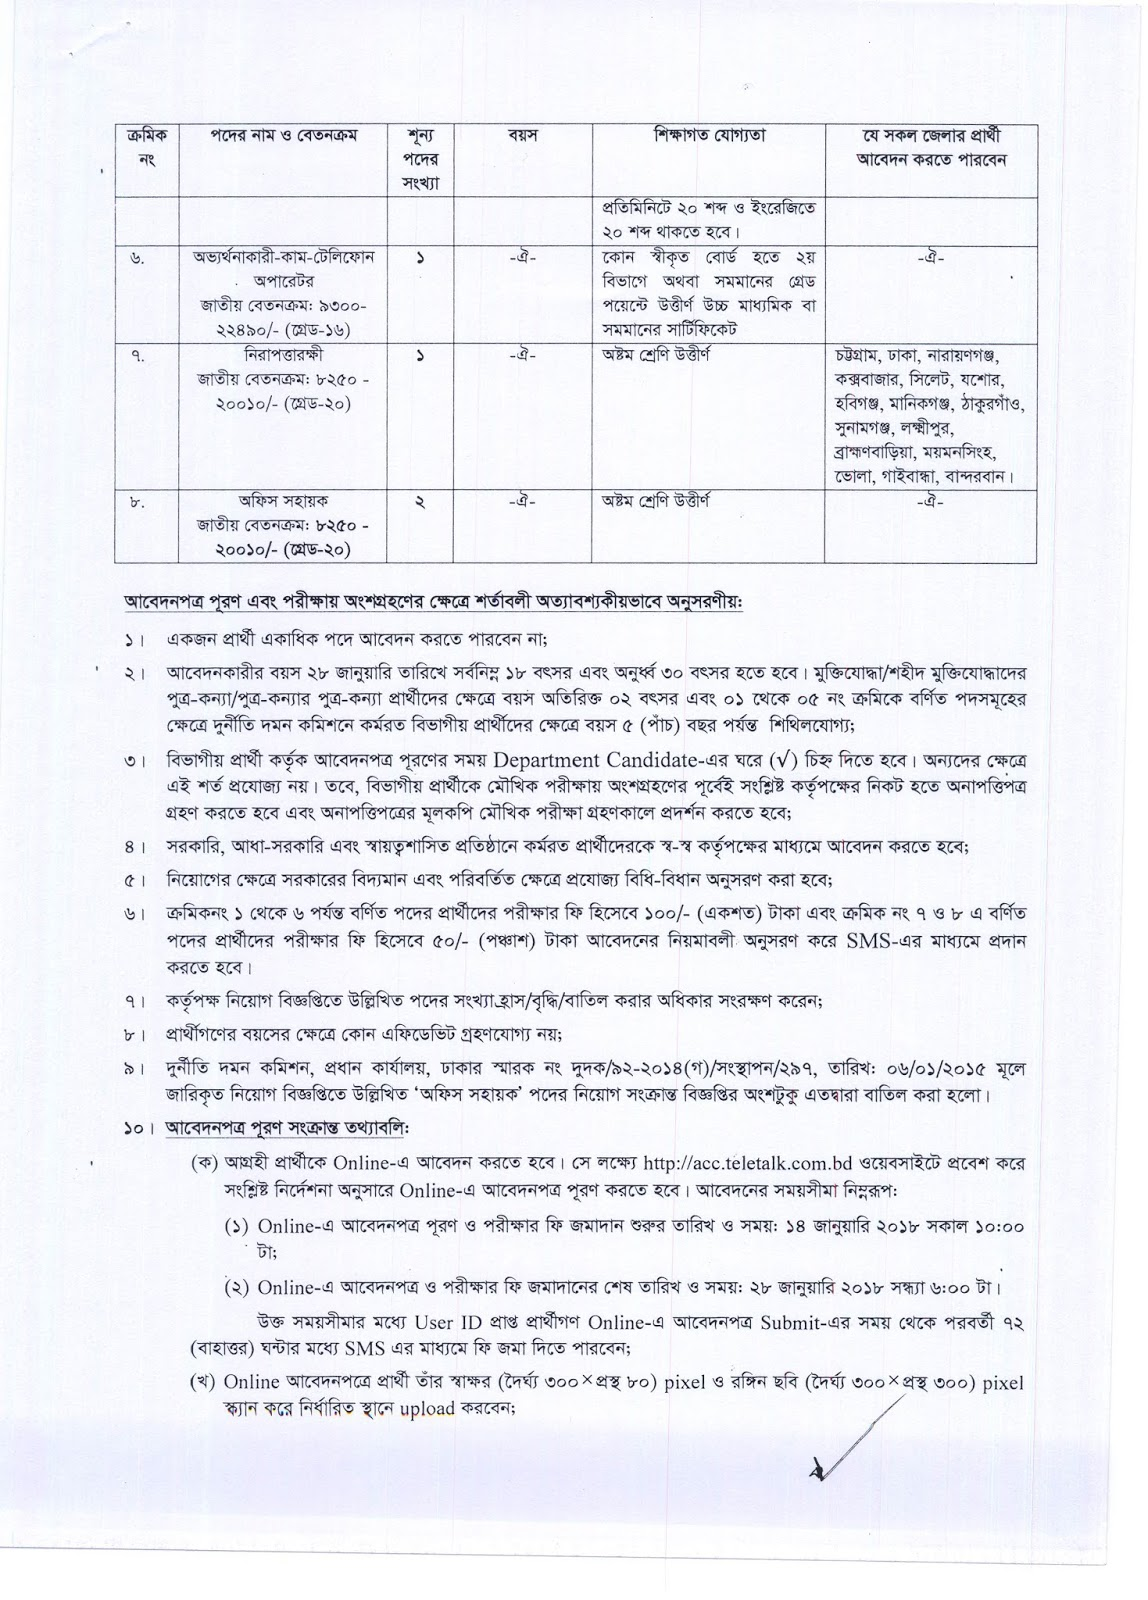 ACC Anti-Corruption Commission Job Circular 2018